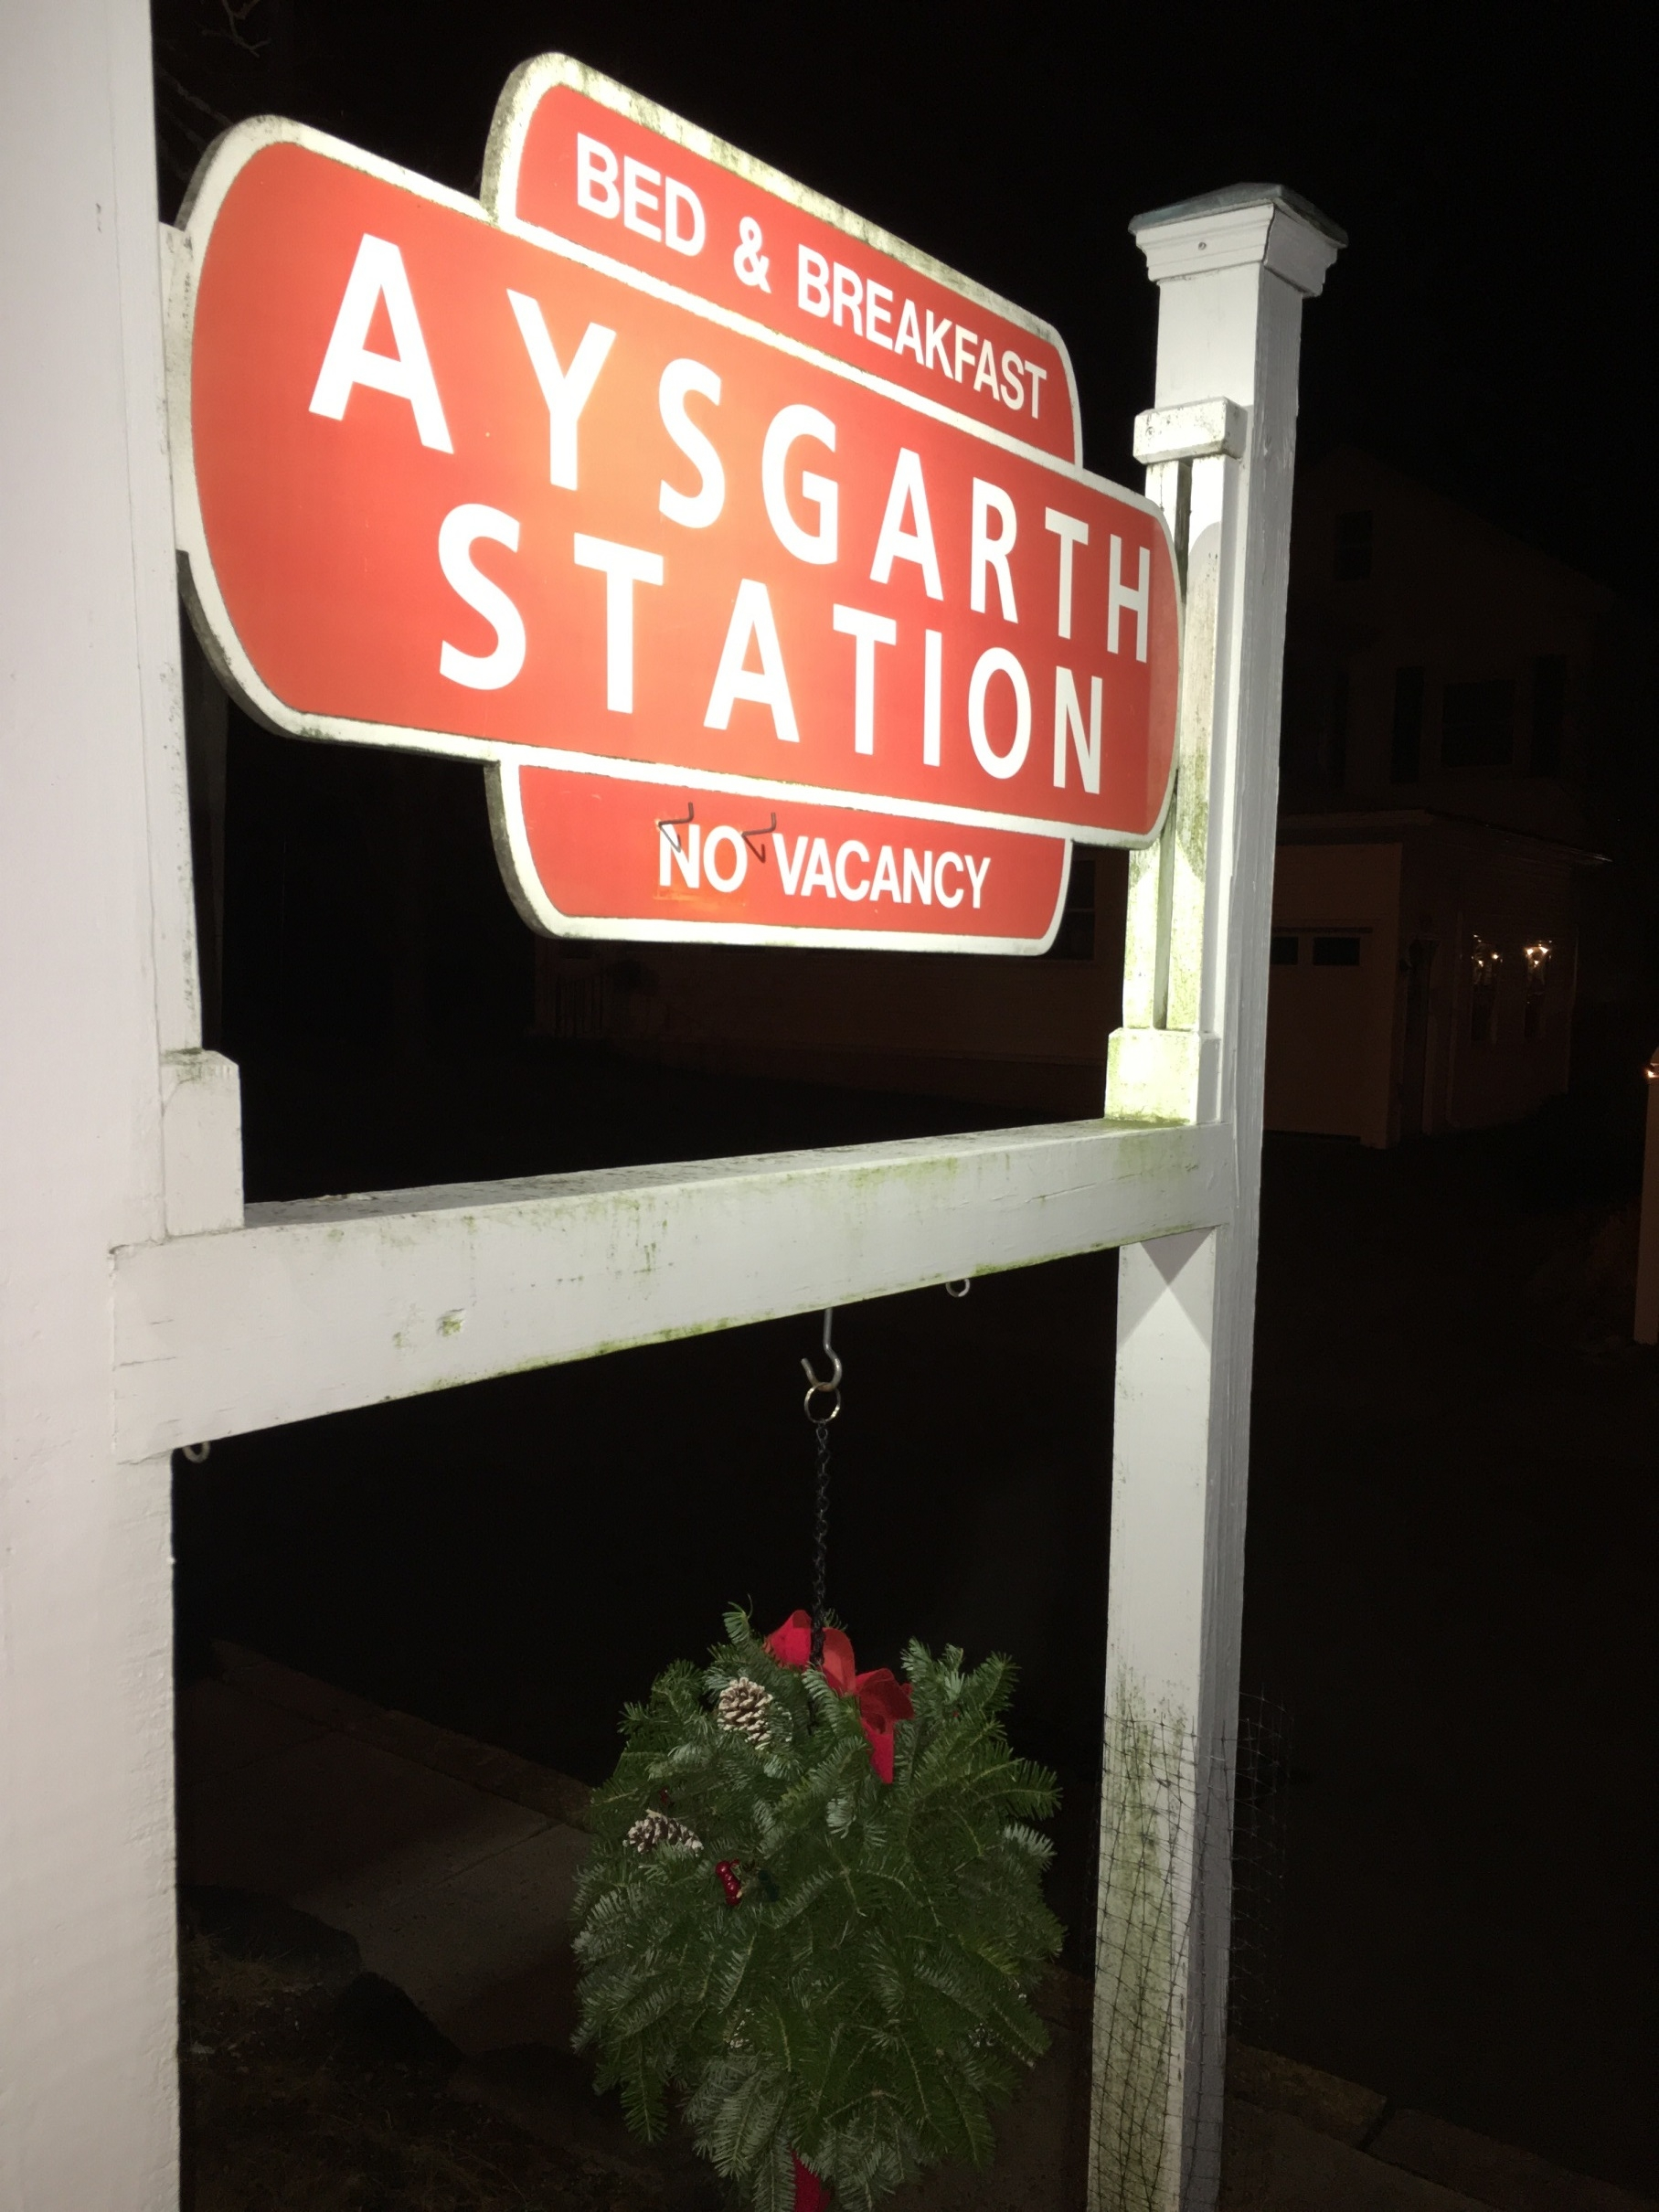 Look for the wreath hanging from the sign and you'll find Aysgarth Station!